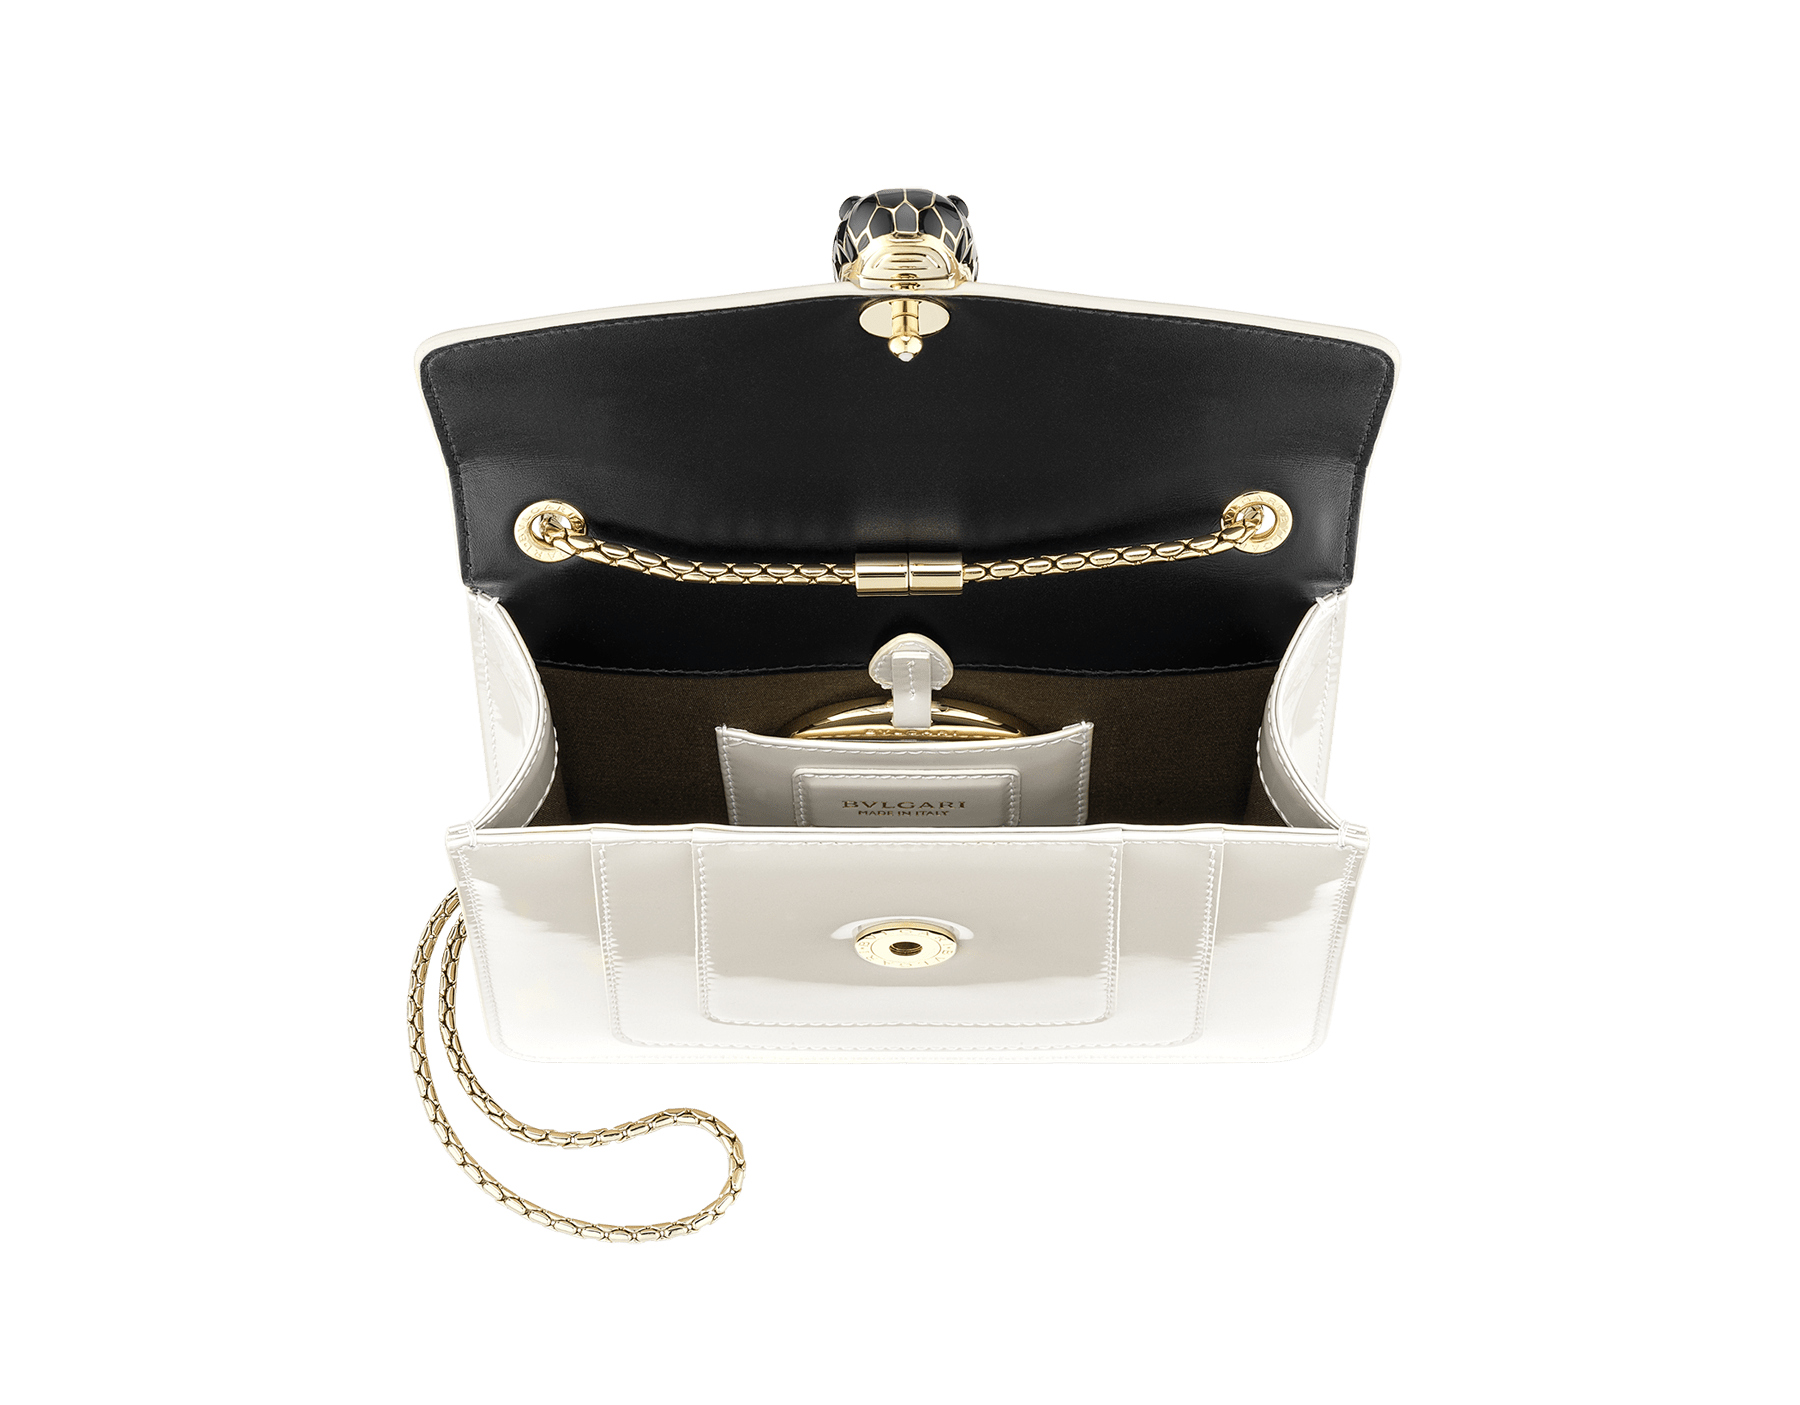 """Serpenti Forever"" crossbody bag in white agate calf leather with a varnished and pearled effect. Iconic snake head closure in light gold plated brass enriched with black and pearled white agate enamel, and black onyx eyes 289769 image 4"